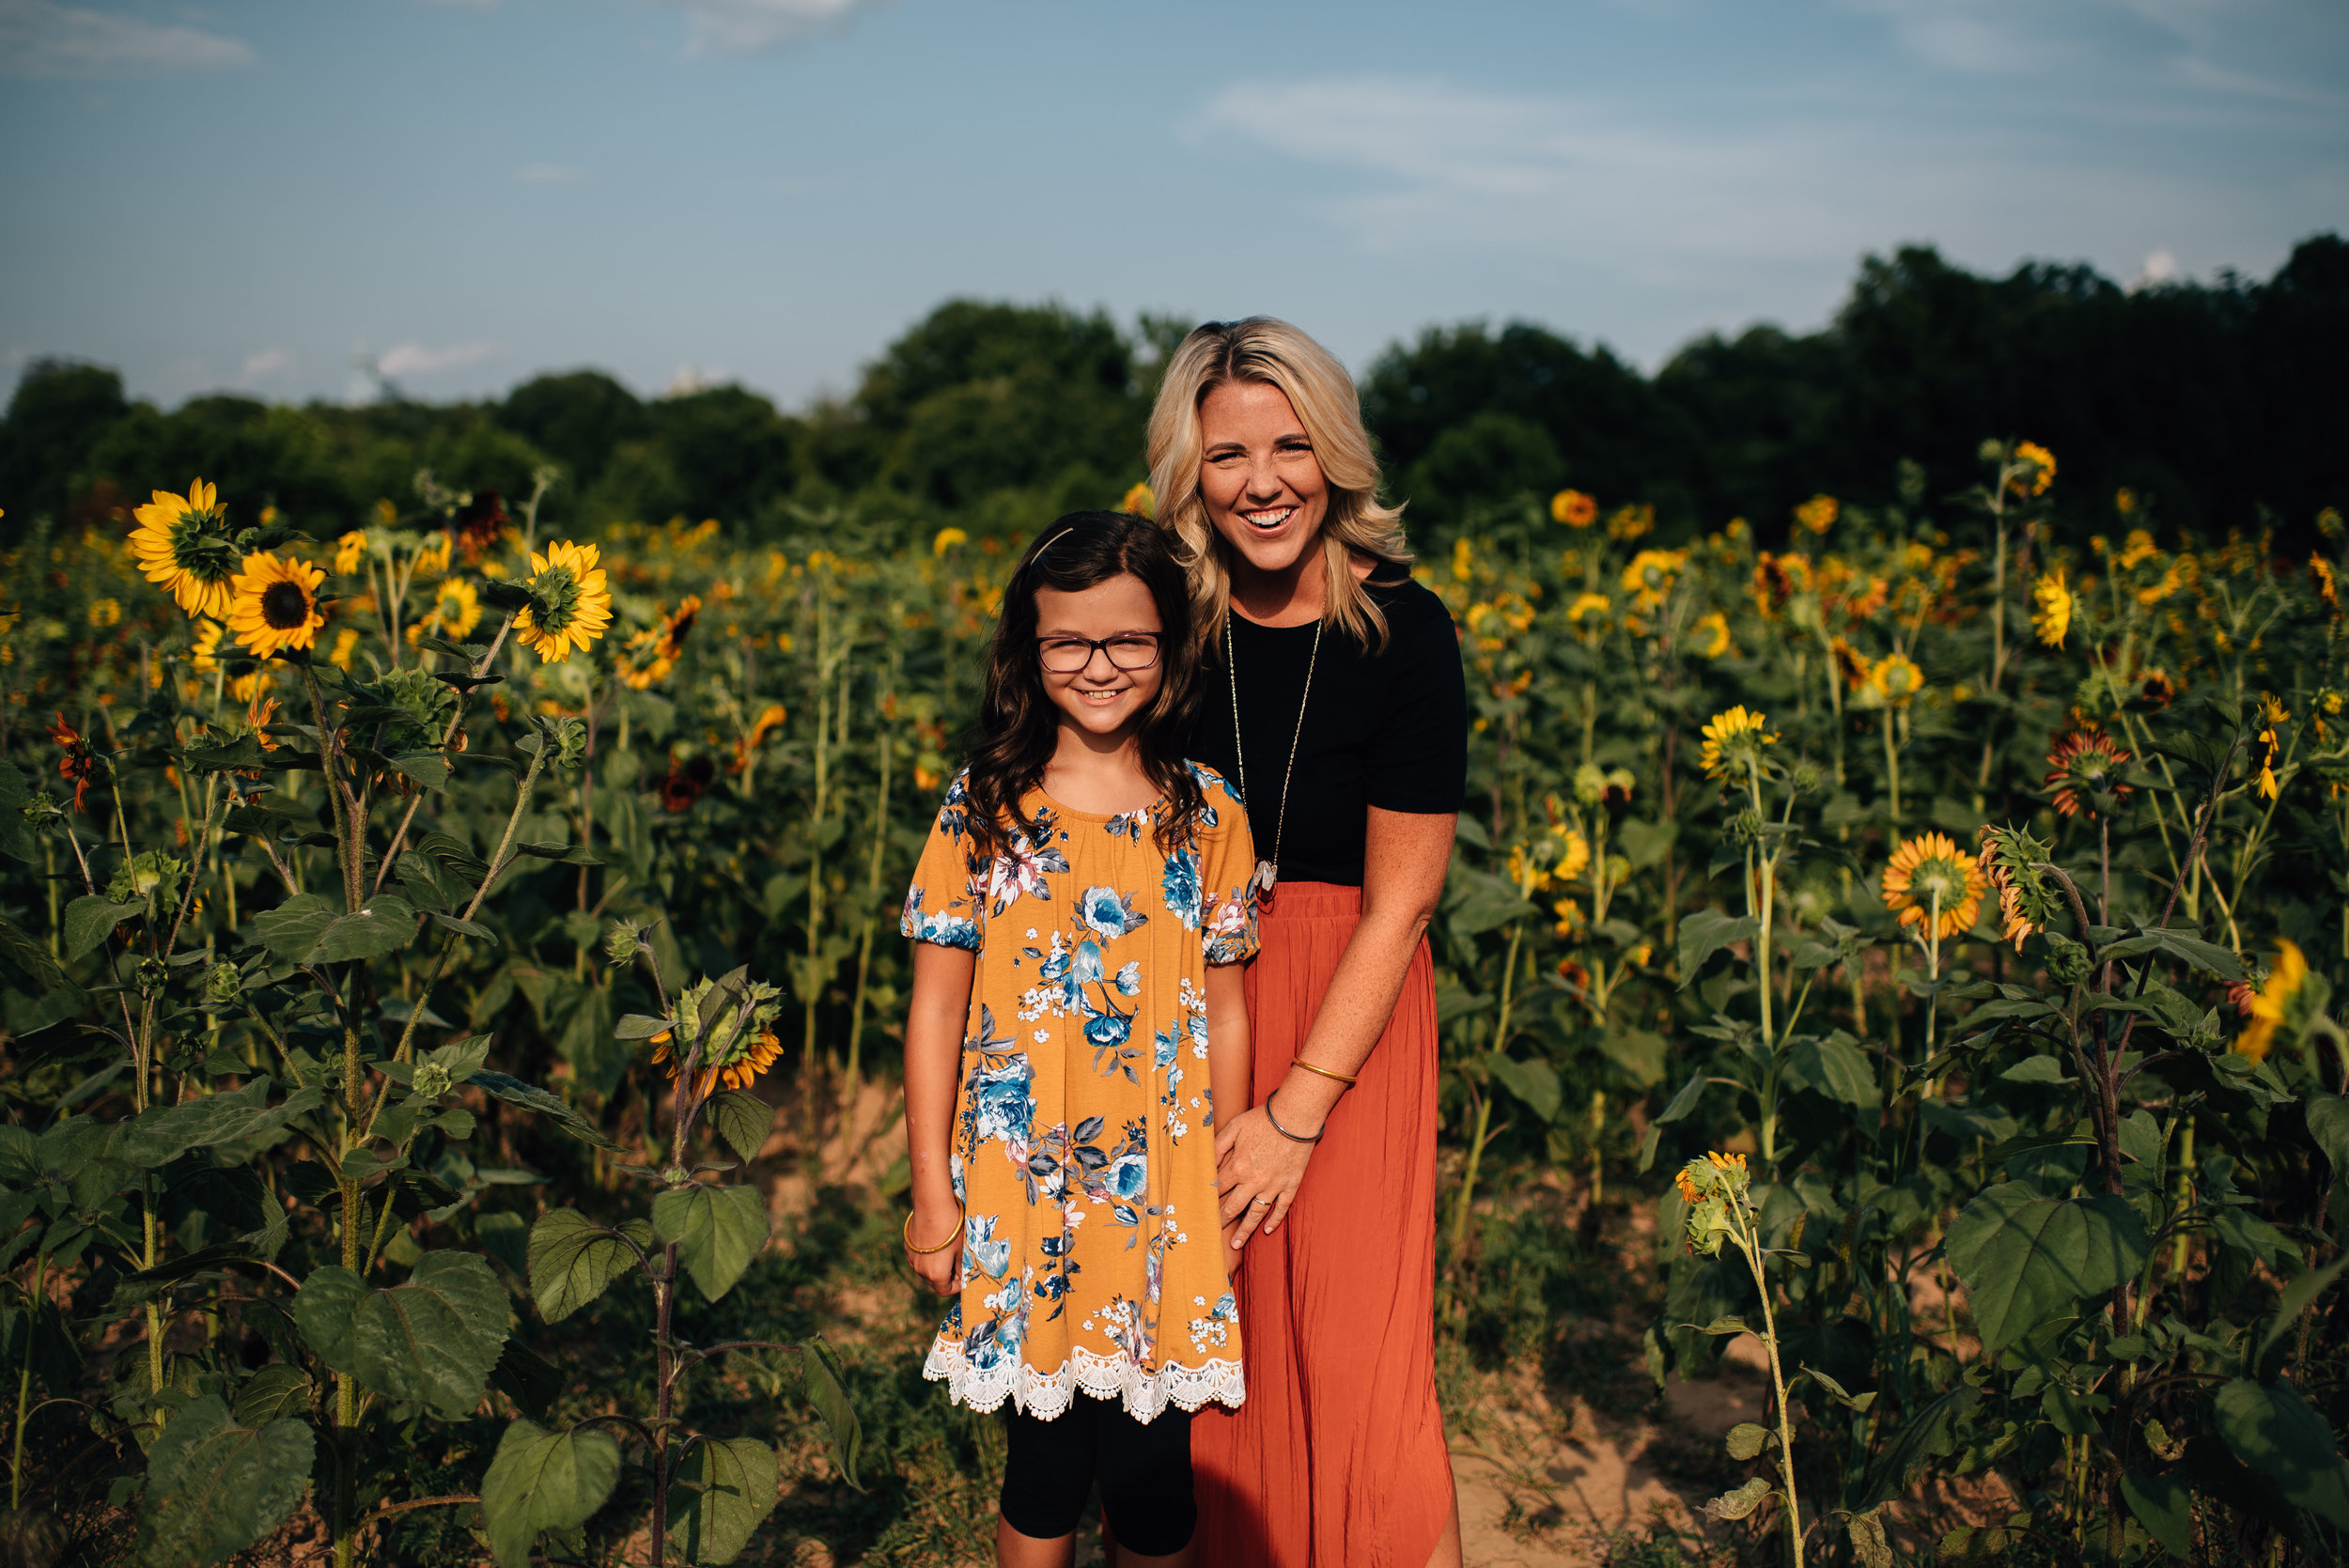 dorthea dix family session - raleigh family photographer - north carolina family photographer - sunflower family session - mommy and me photo session - mom and daughter photos